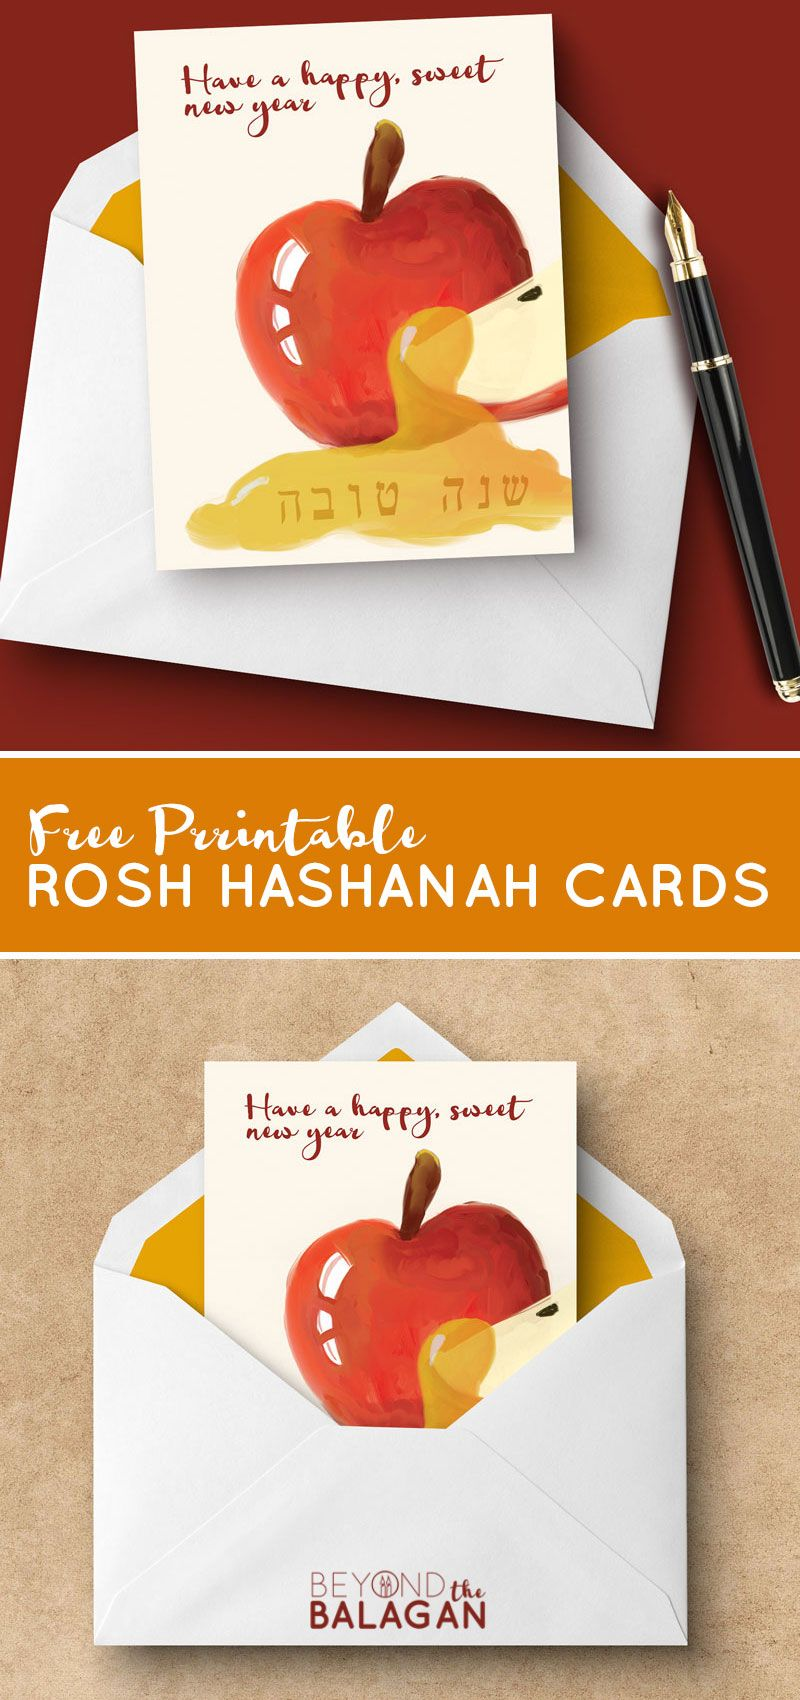 Download These Free Printable Rosh Hashanah Cards These Fun Free